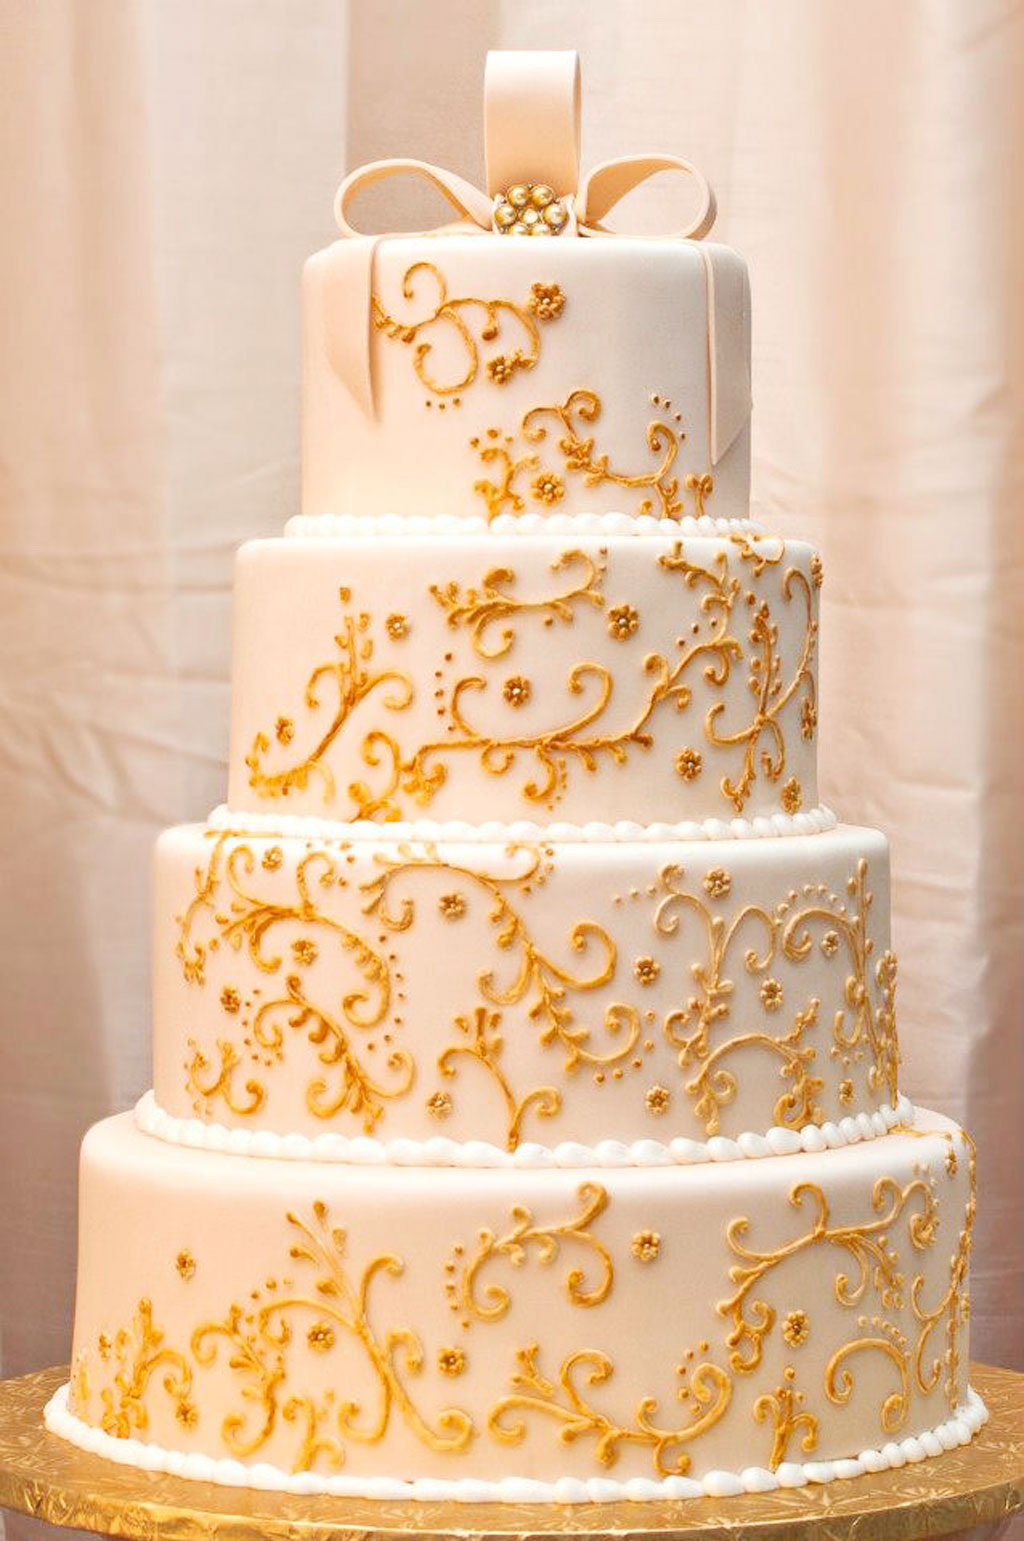 wedding cakes raleigh durham nc yellow wedding cakes raleigh nc wedding cake cake ideas 25331